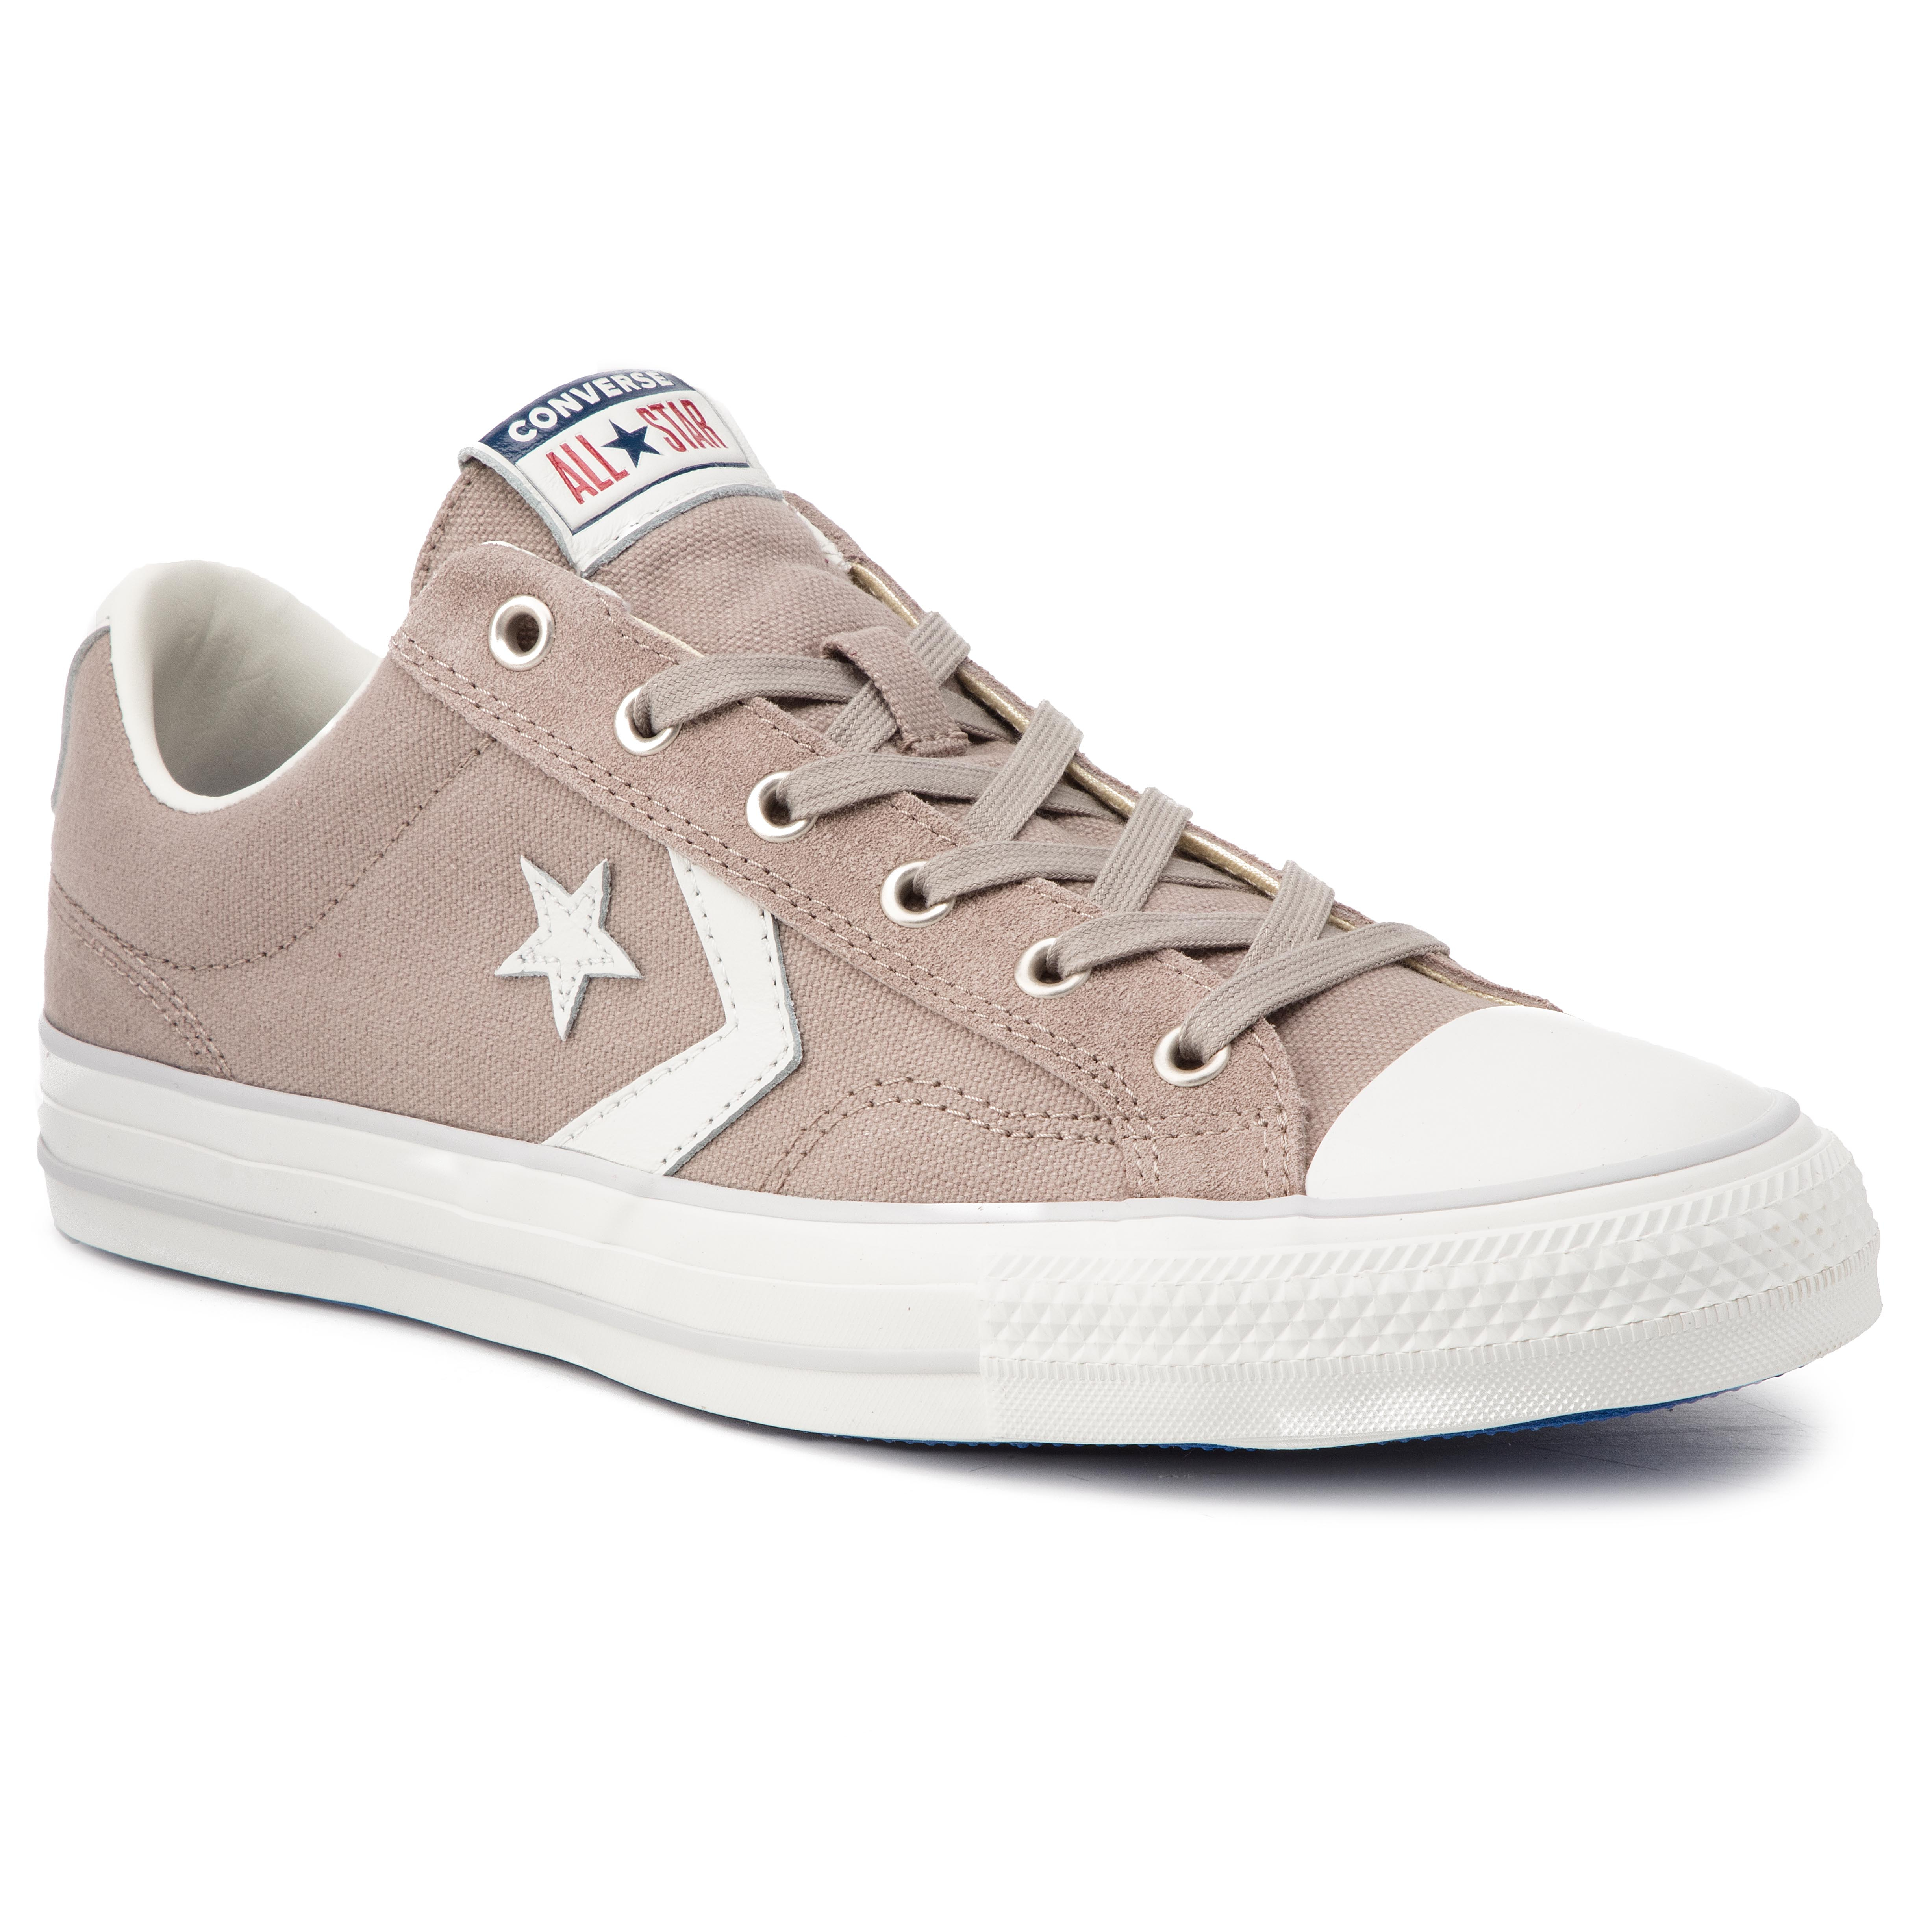 Teniși Converse - Star Player Ox Hum 163962c Hummus/White/Mouse imagine epantofi.ro 2021